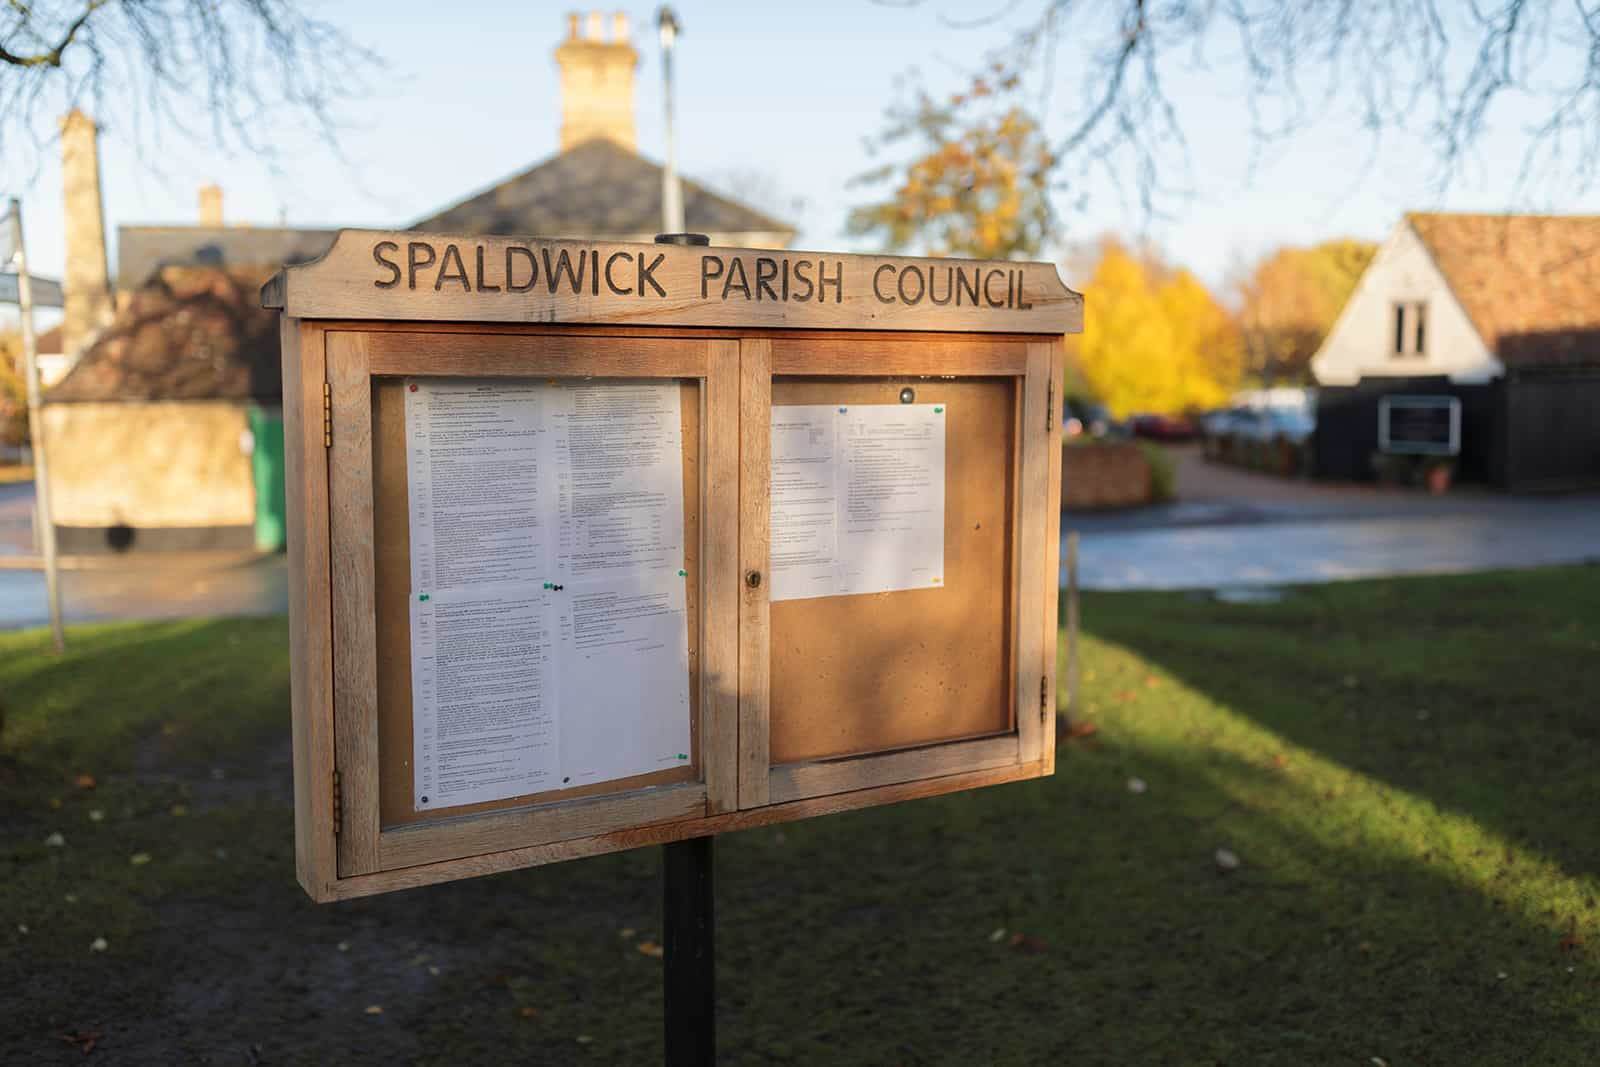 Spaldwick Parish Council